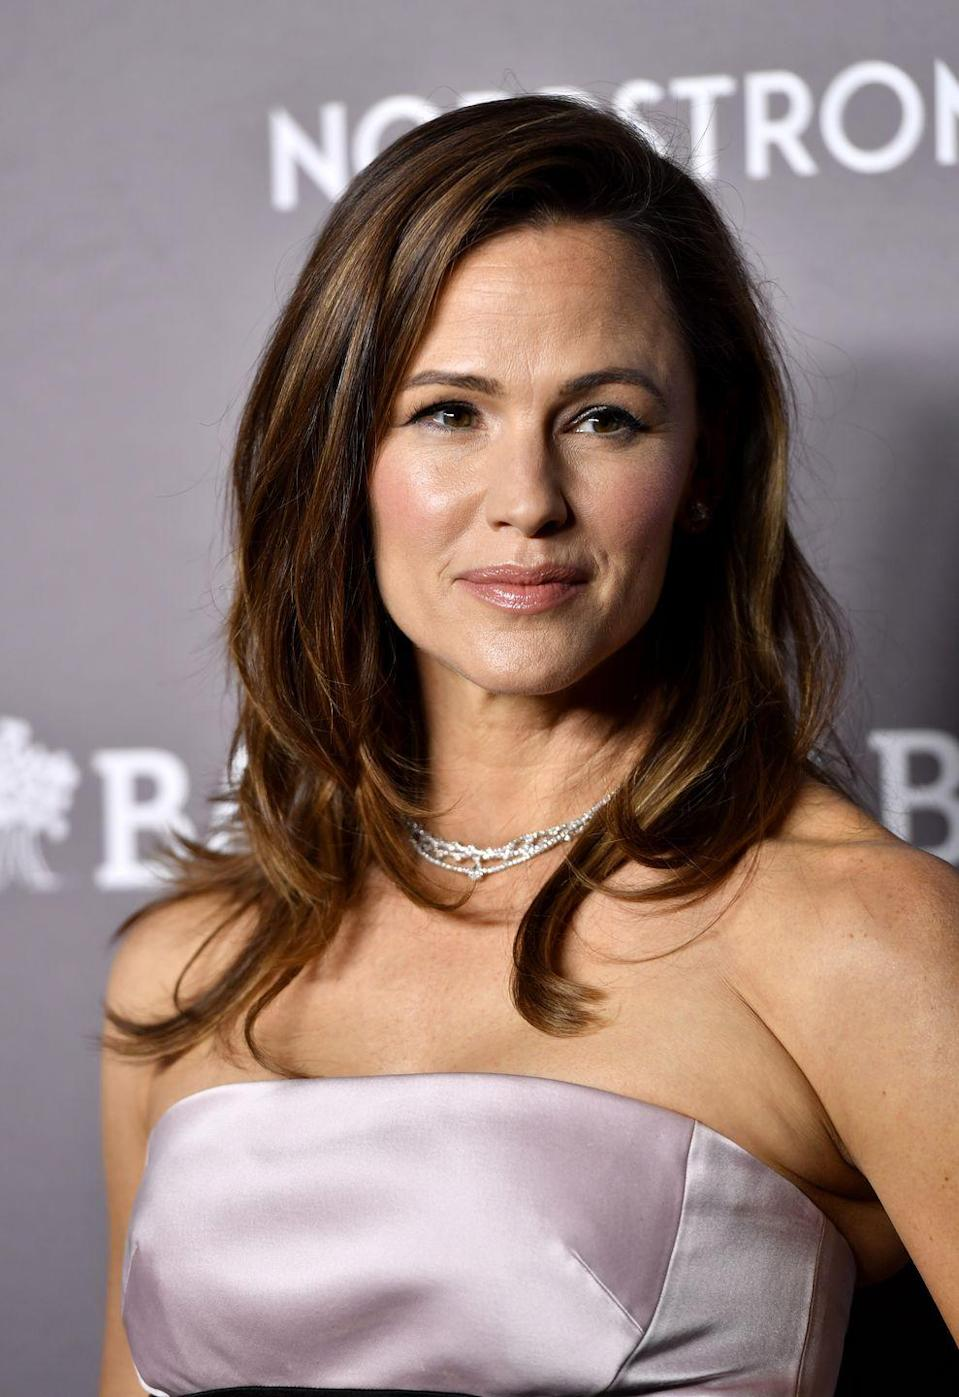 <p><strong>Jennifer Garner</strong> shows how wearable reddish-brown locks are. Her shaggy, layered haircut helps accentuate her highlights even more. </p>